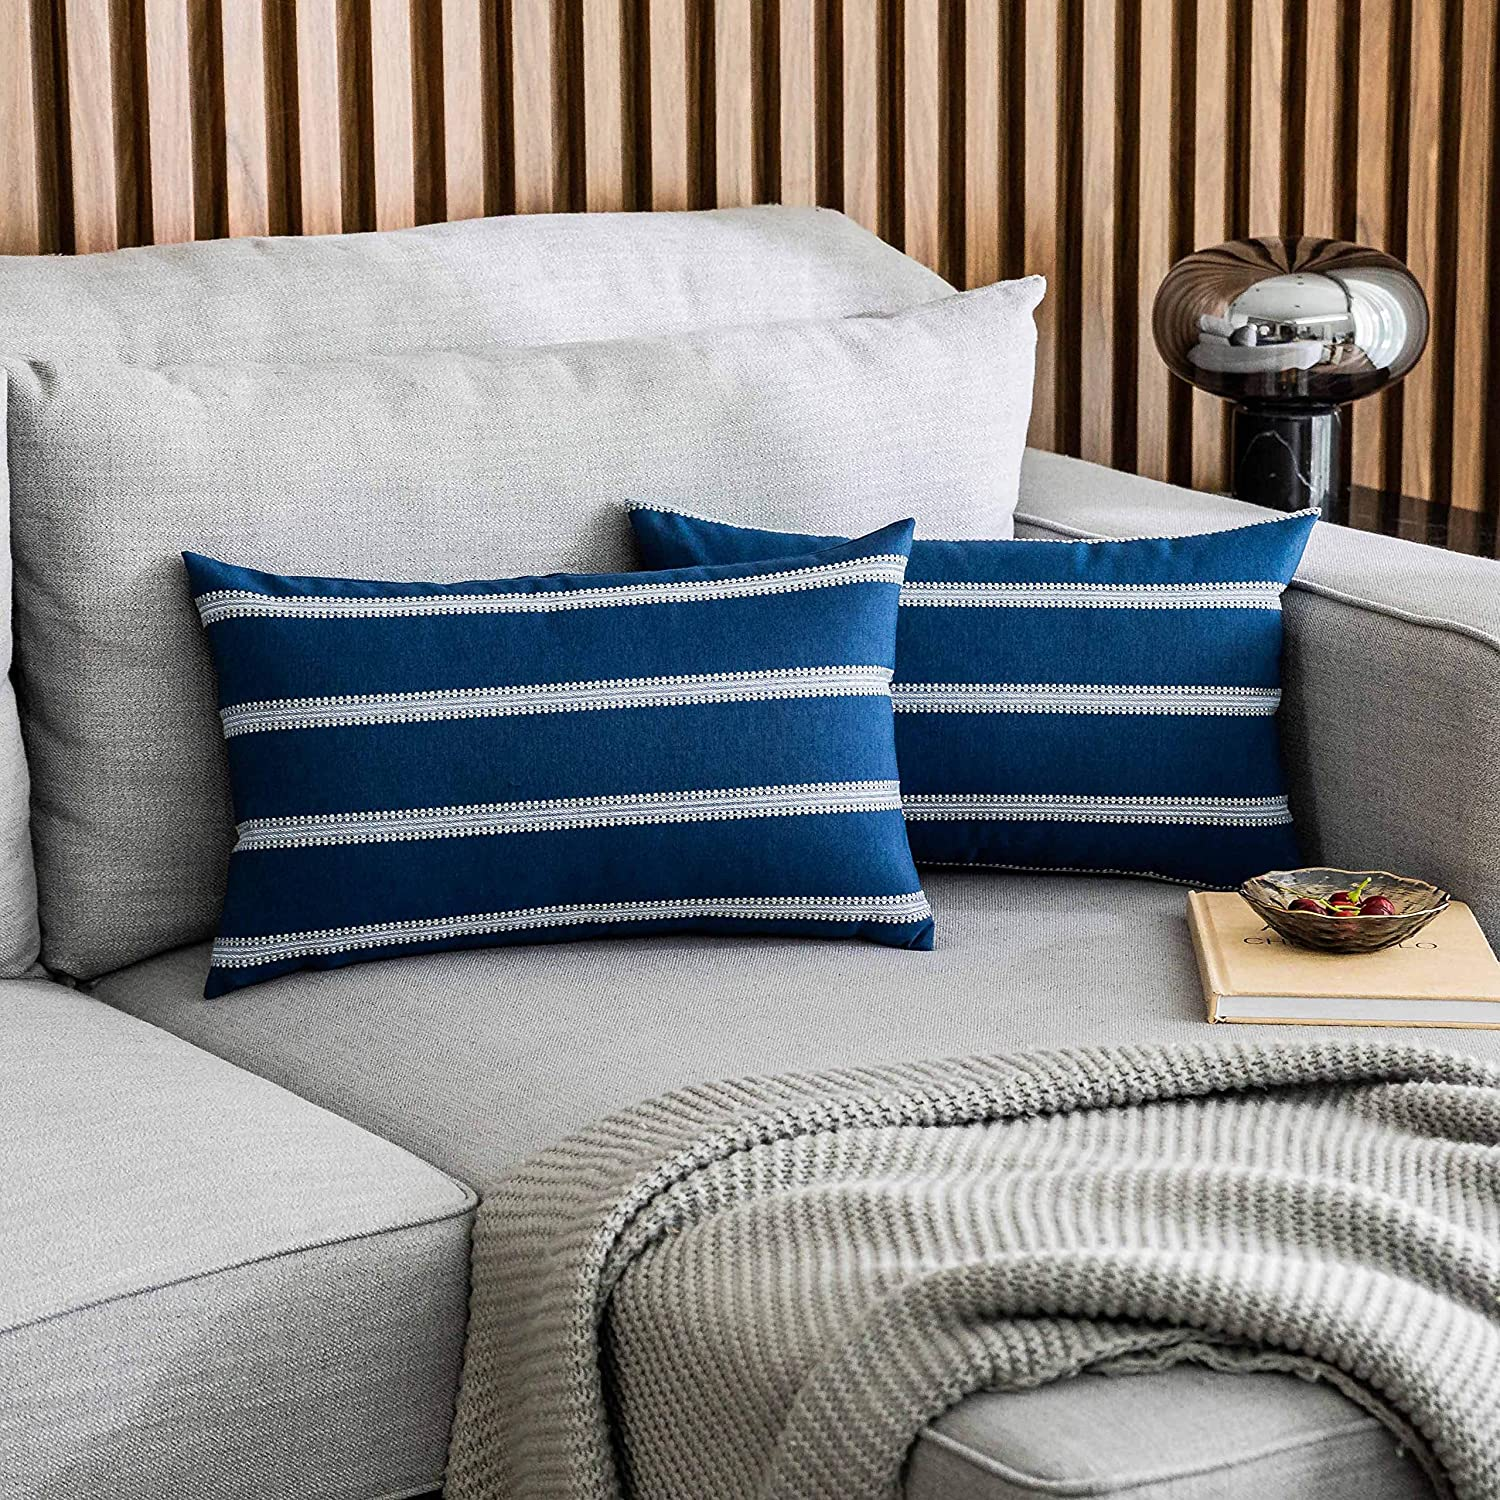 Home Brilliant Striped Farmhouse Decor Accent Decorative Throw Pillows Covers Cushion Covers for Outdoor Bench Couch Room, 2 Packs, 12 x 20 inches(30x50cm), Navy Blue